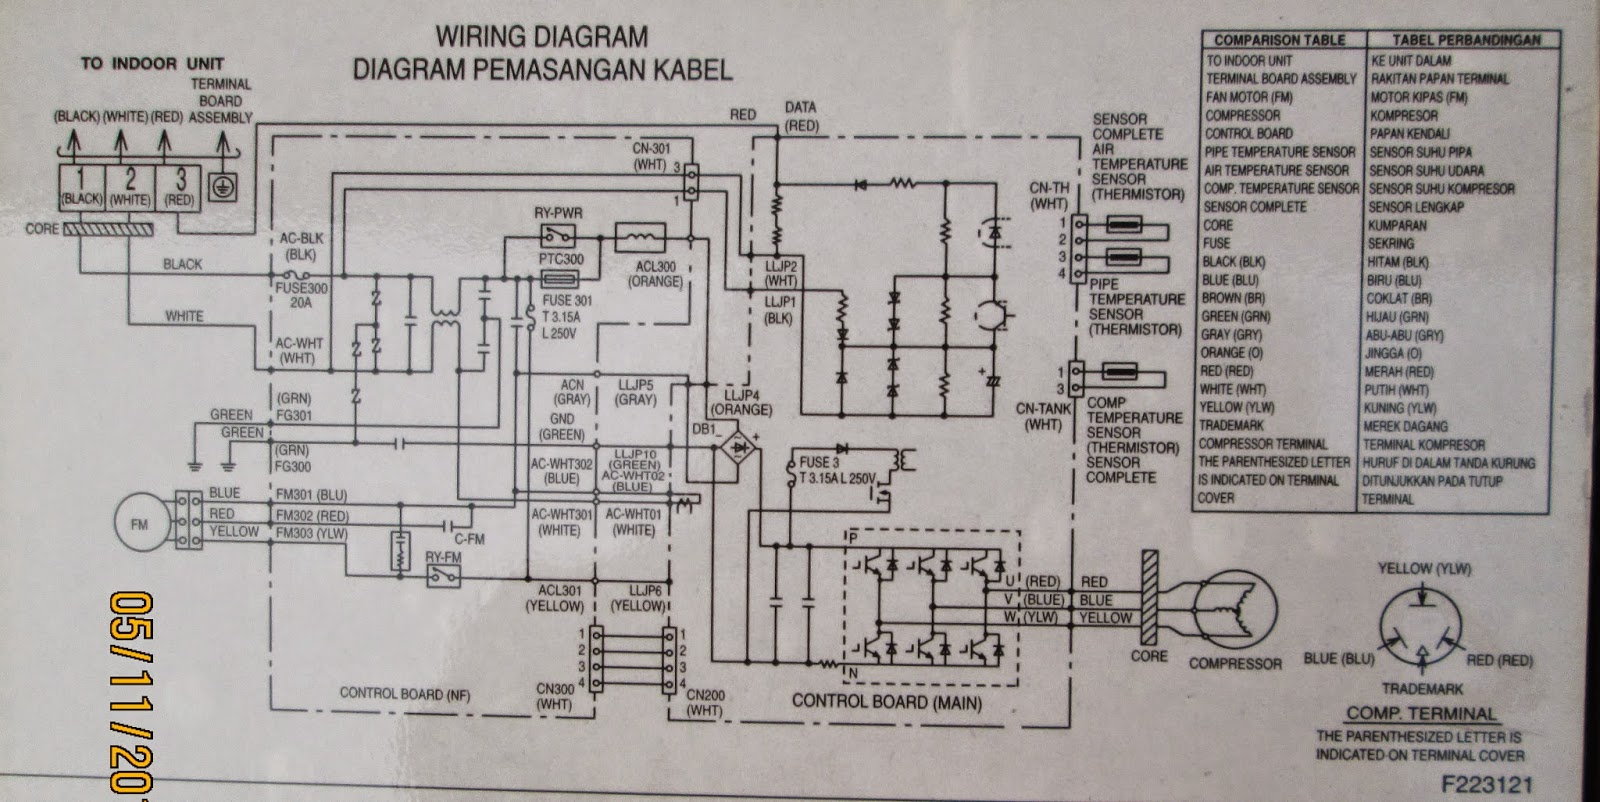 Wiring diagram ac sharp inverter wire center service ac kota serang baru diagram kelistrikan ac split rh service ac ksb blogspot com 12v inverter circuit diagram grid tie power inverter wiring diagram asfbconference2016